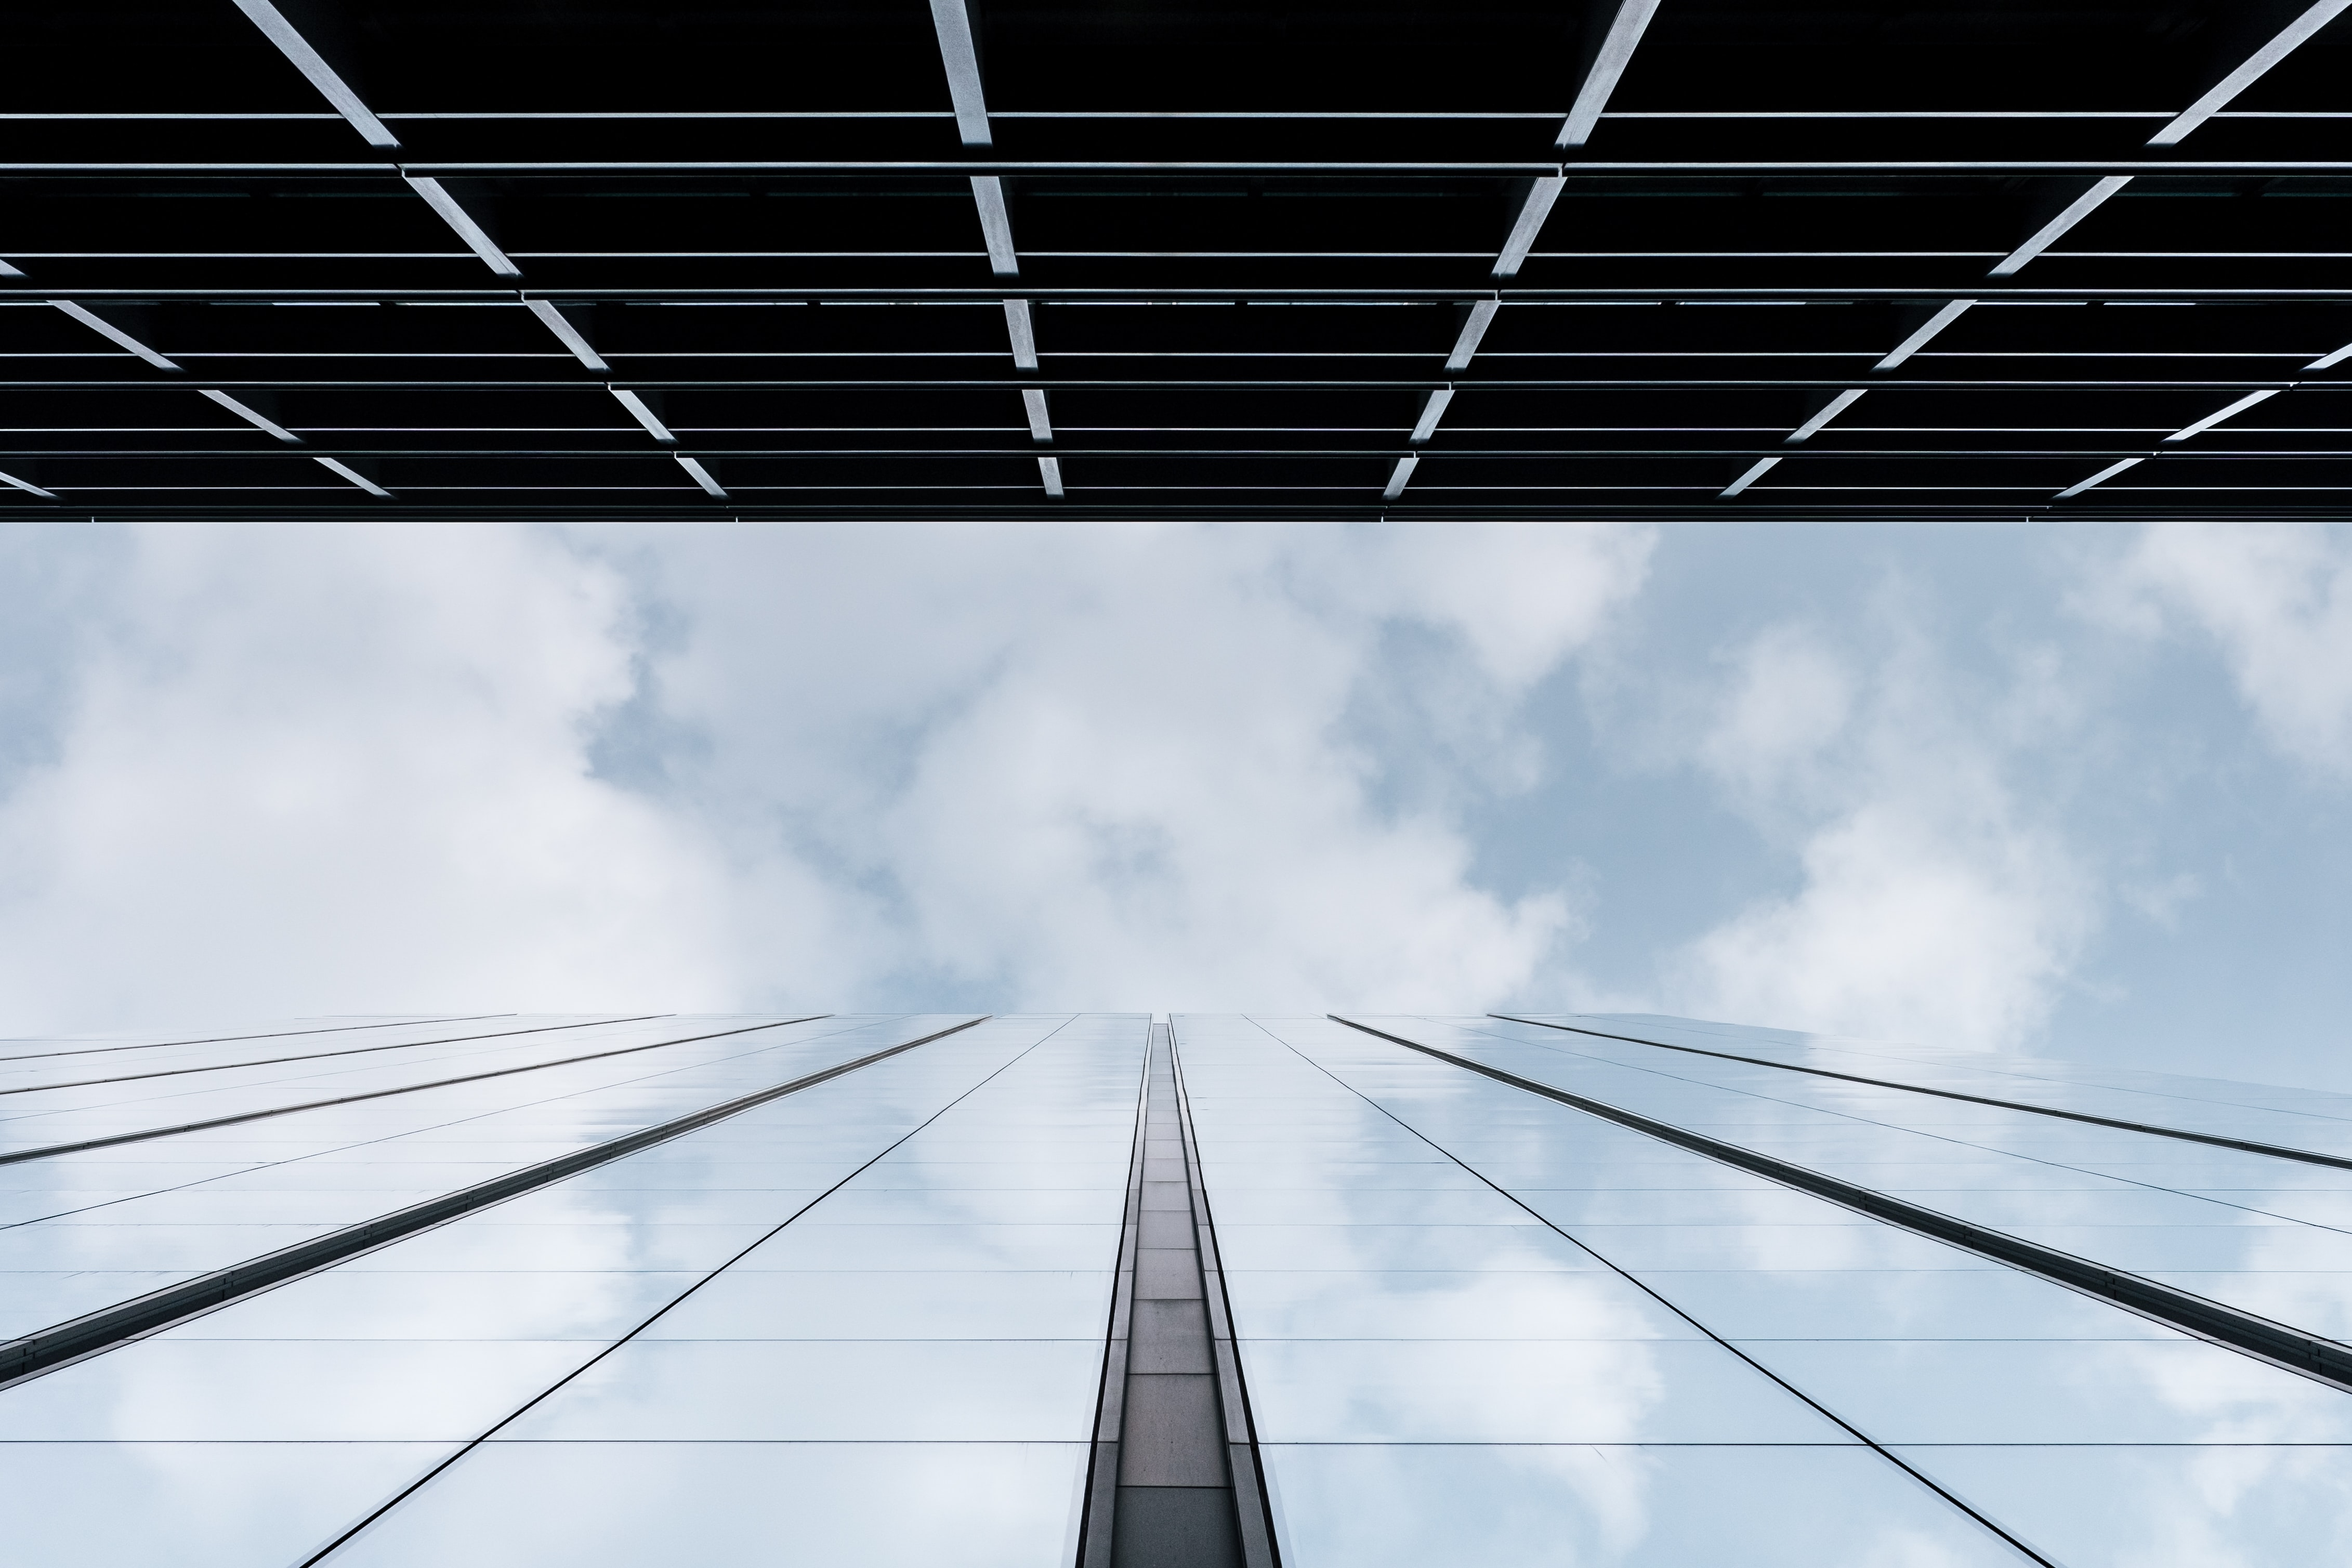 A low-angle shot of a glass facade reflecting the clouds in the sky above